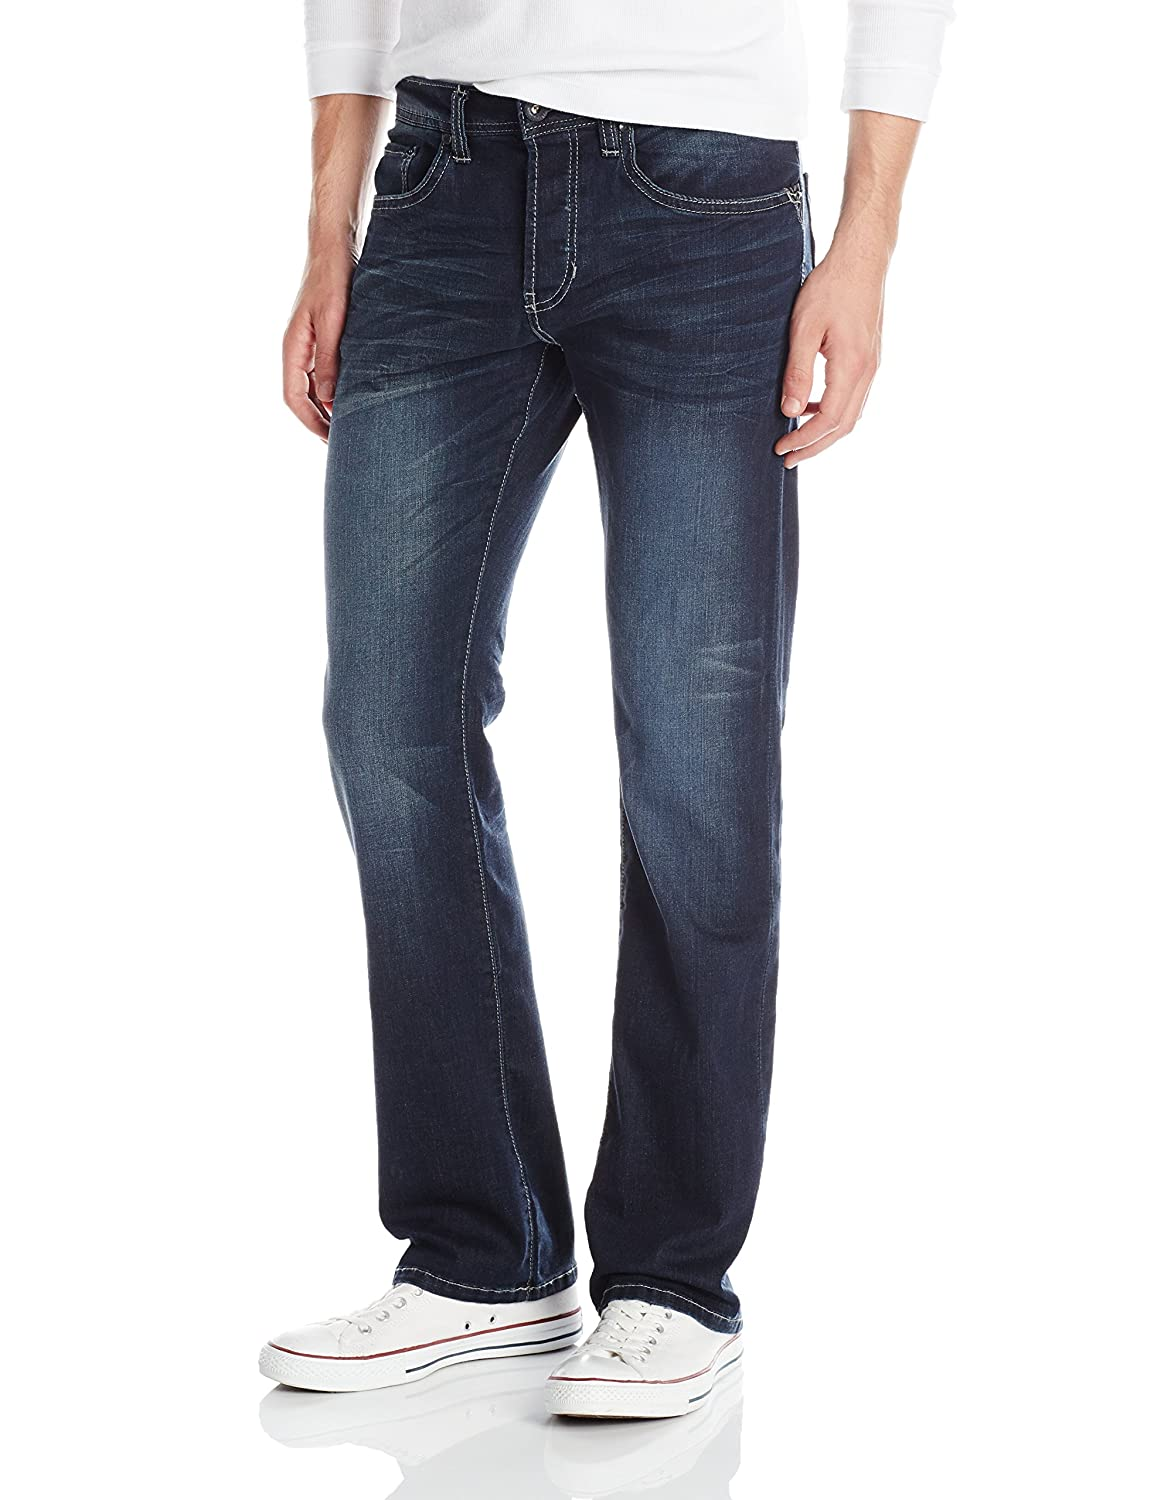 Jeans Clothing, Shoes & Accessories Practical English Laundry Slim Straight Blue Men Jeans 32 X 32